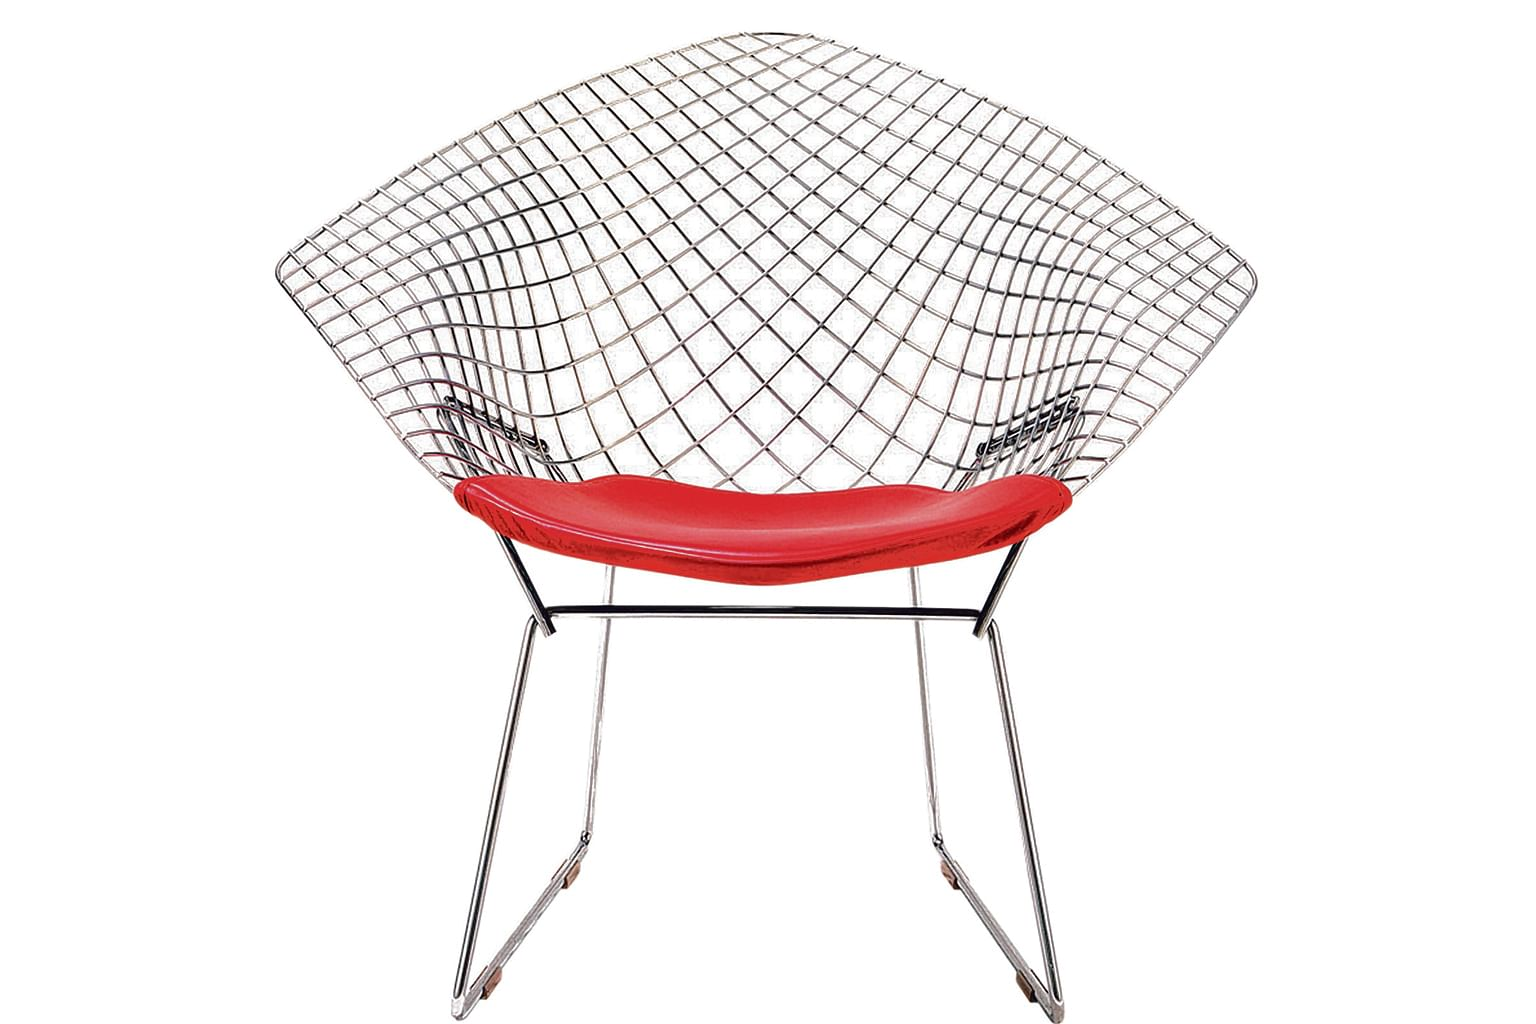 When it debuted in the 1950s the knoll bertoia diamond chair designed by italy born american harry bertoia stood out from the sea of wood furniture a